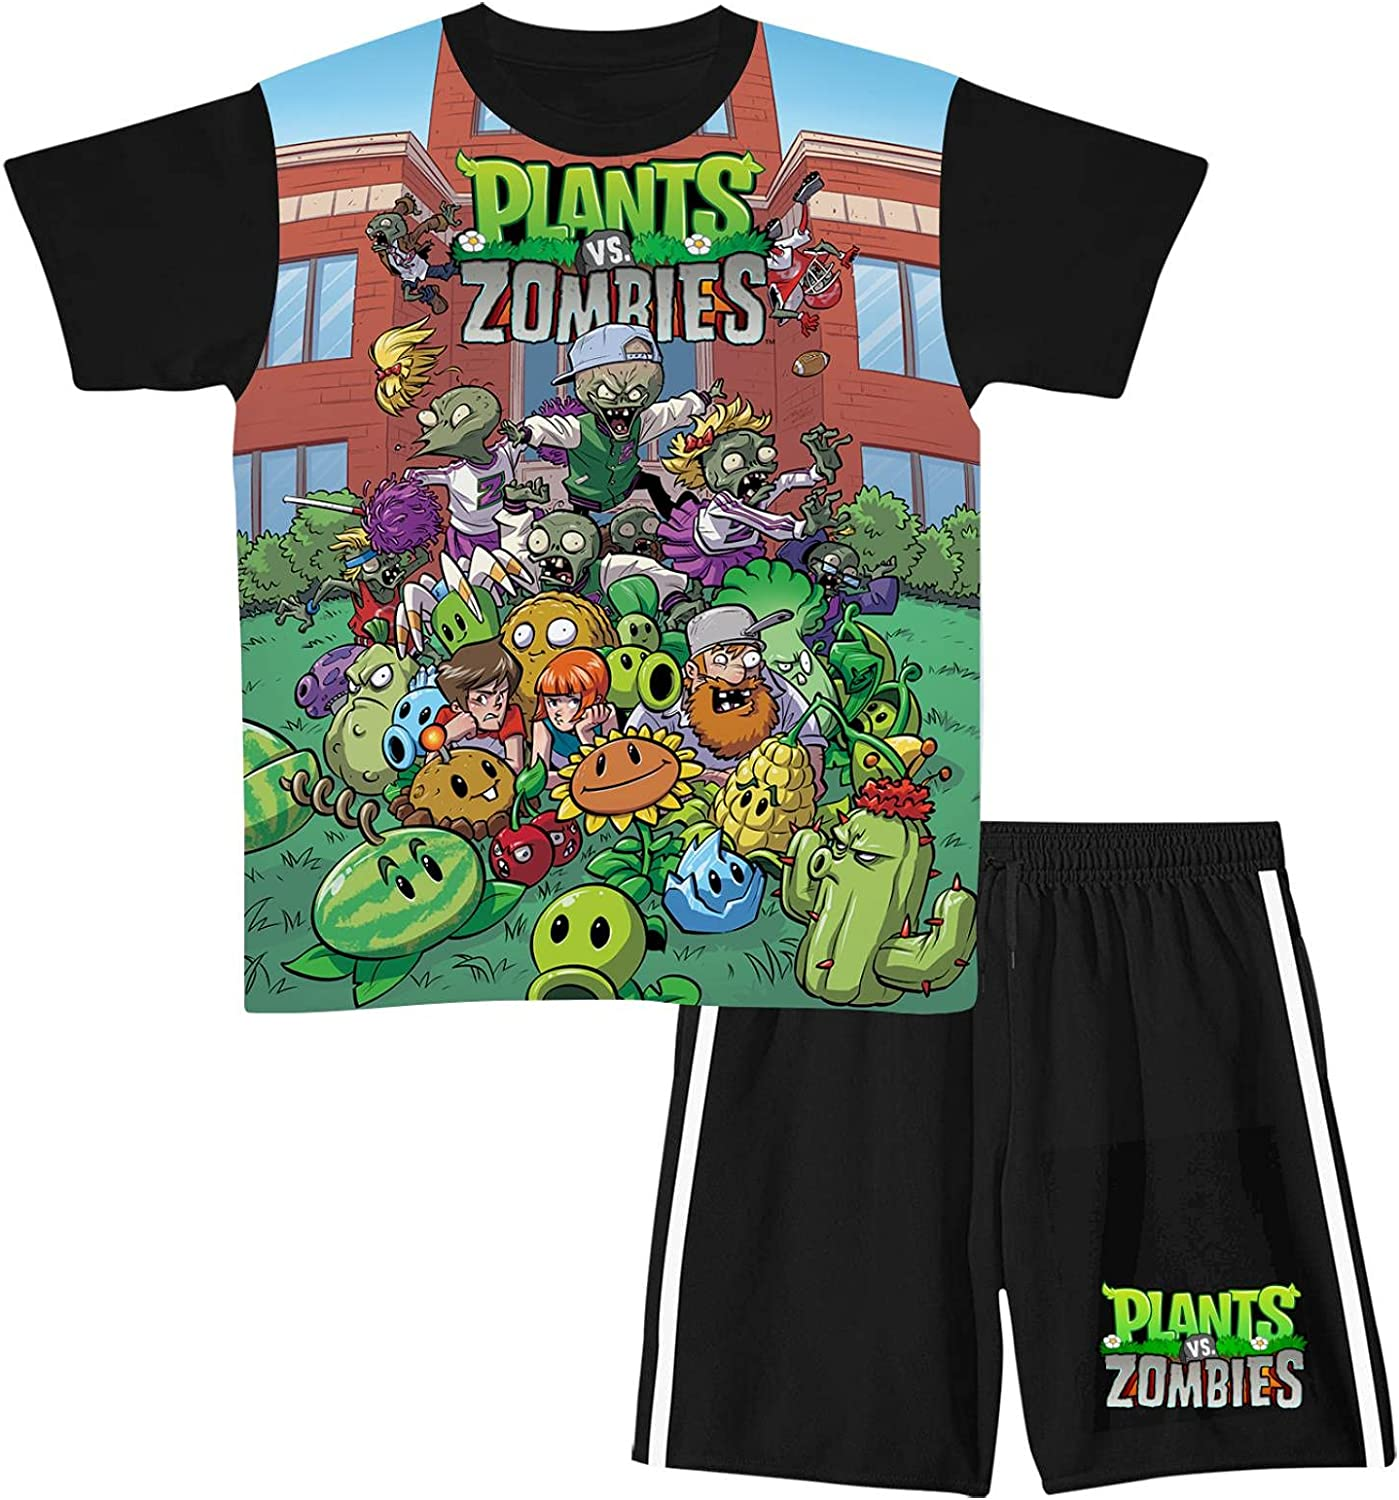 Pl-Ants vs. Zombies Toddler Baby Boy Clothes Tank Top and Pants Sets,Cute Tops and Shorts Set 2 Piece Outfit